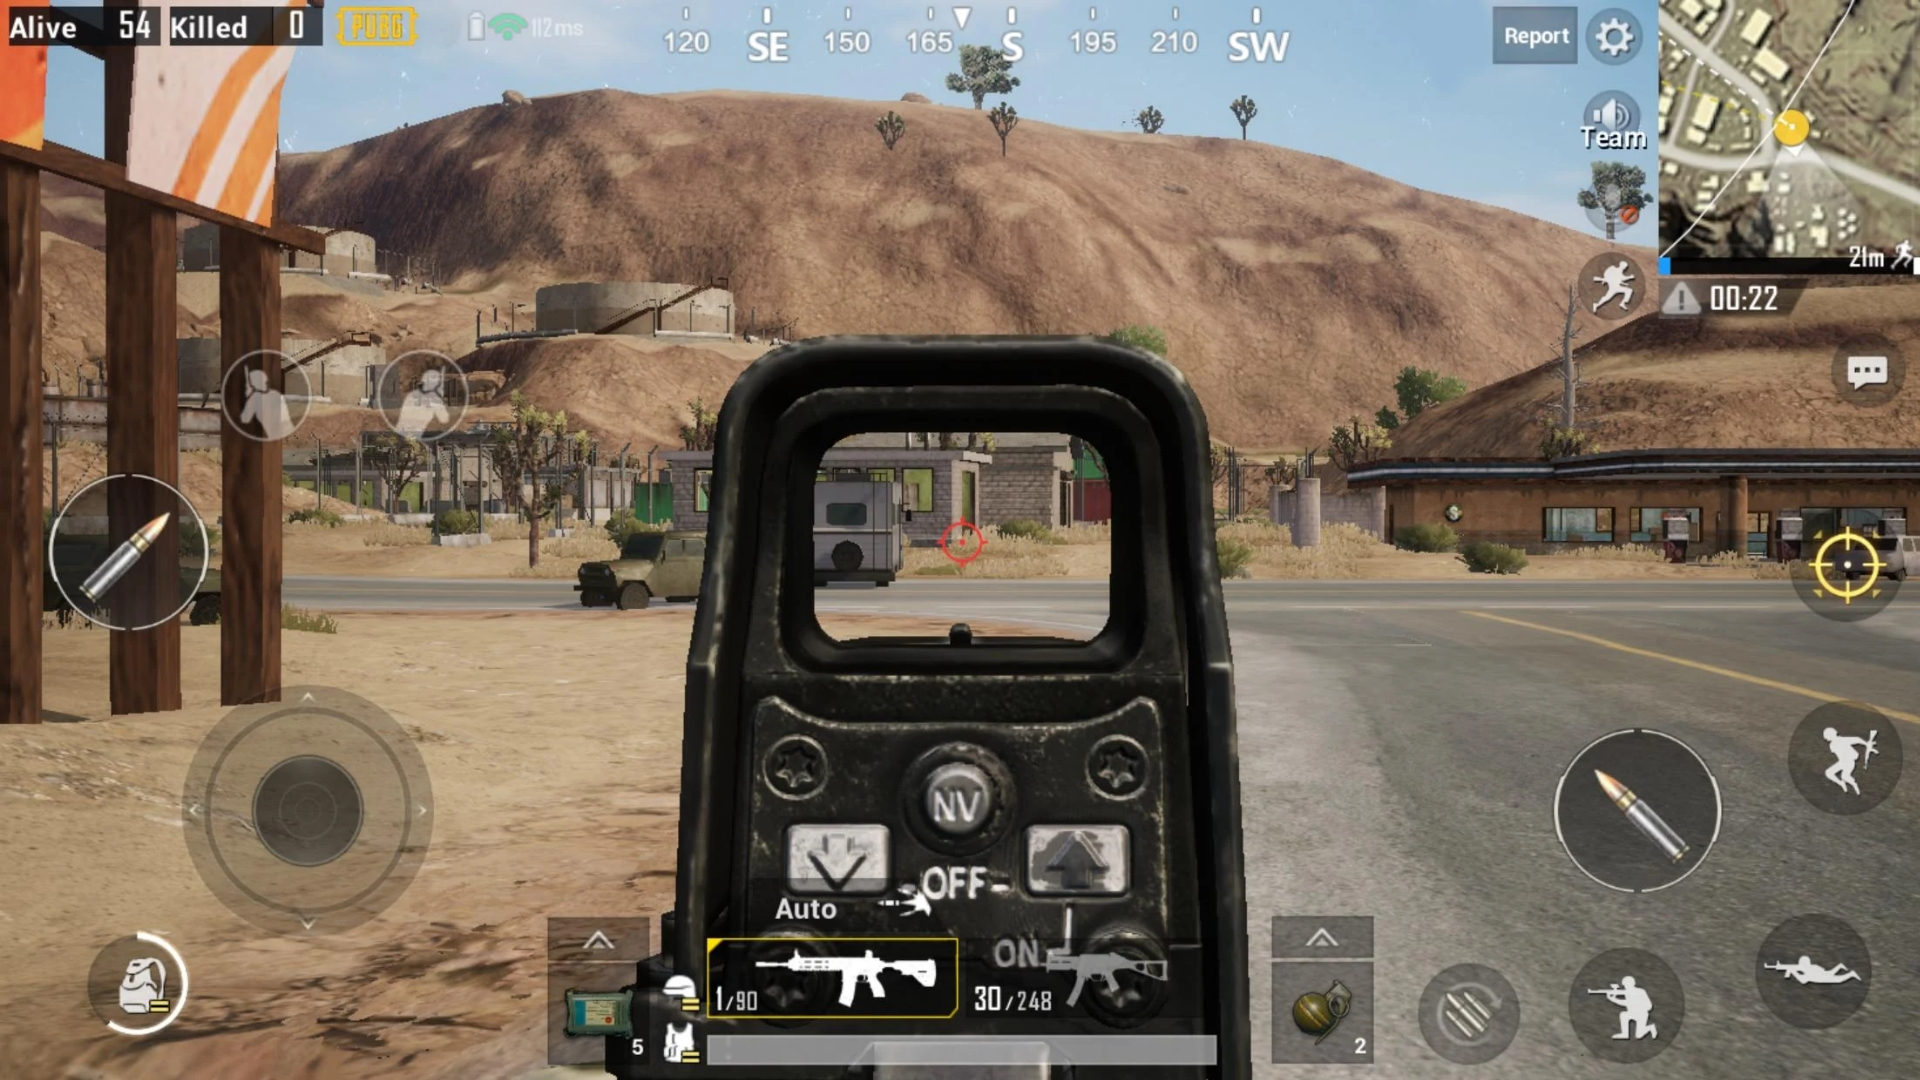 Pubg Mobile All The Details Pcgamesn - pubg mobile screenshot